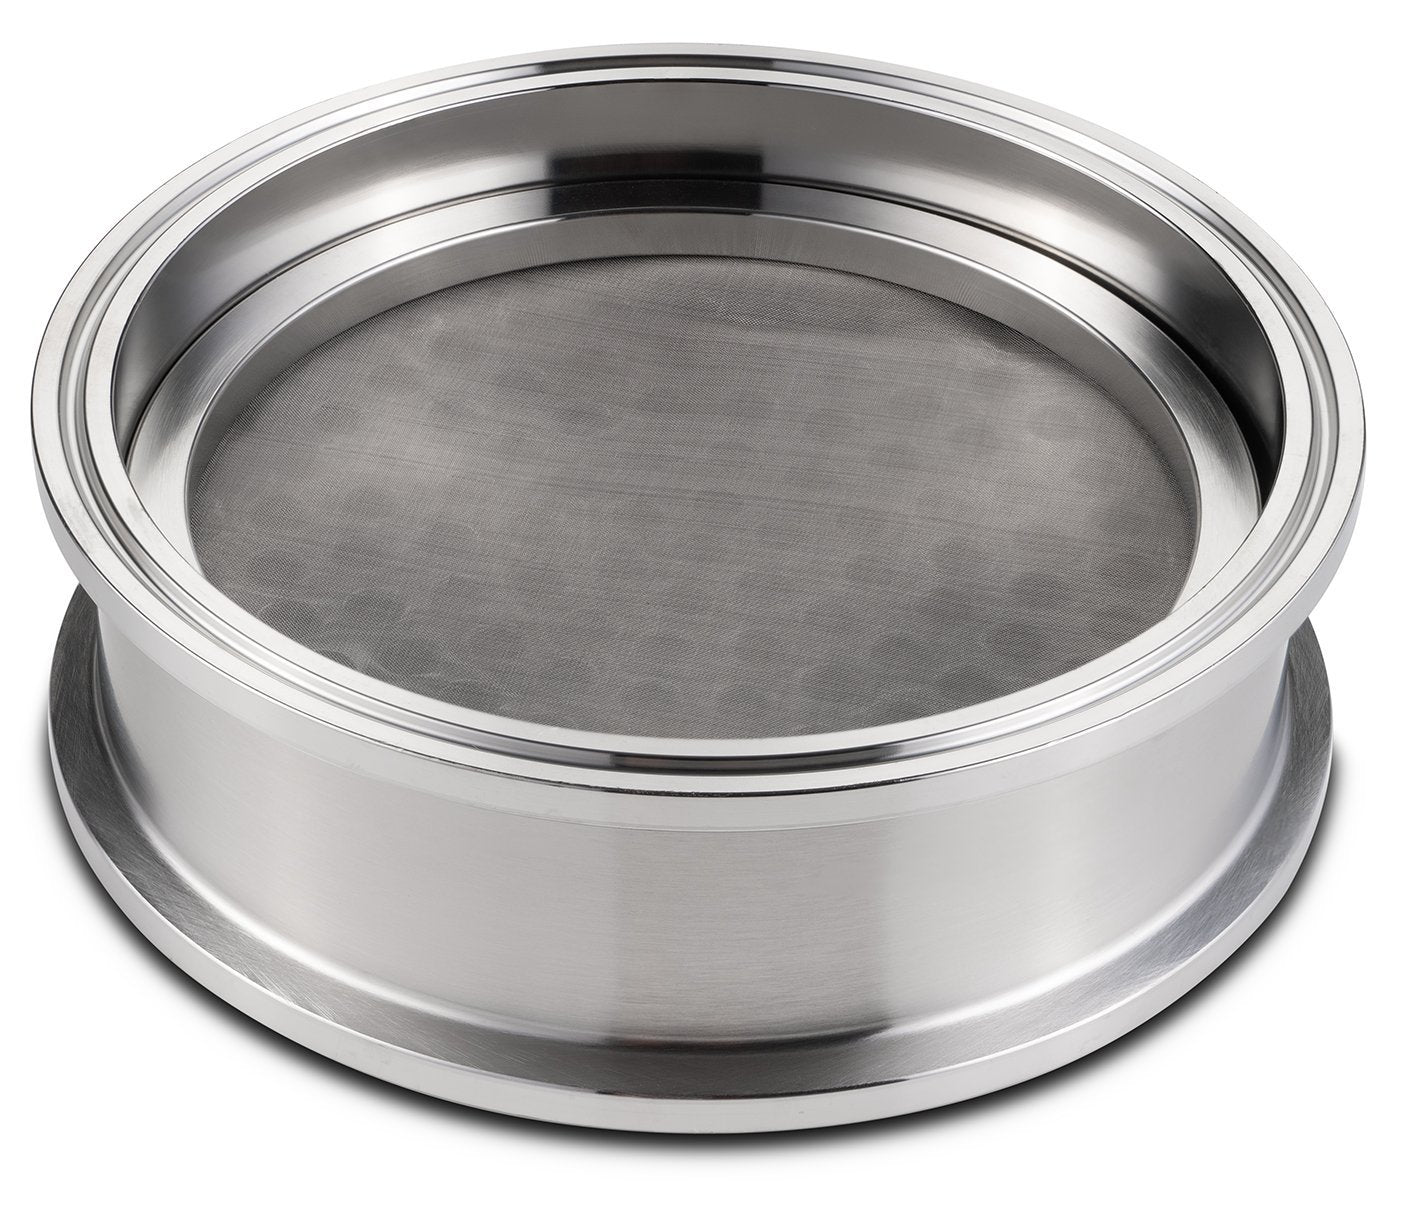 BVV 2 Inch 304 Stainless Steel Tri-Clamp Filter Plate